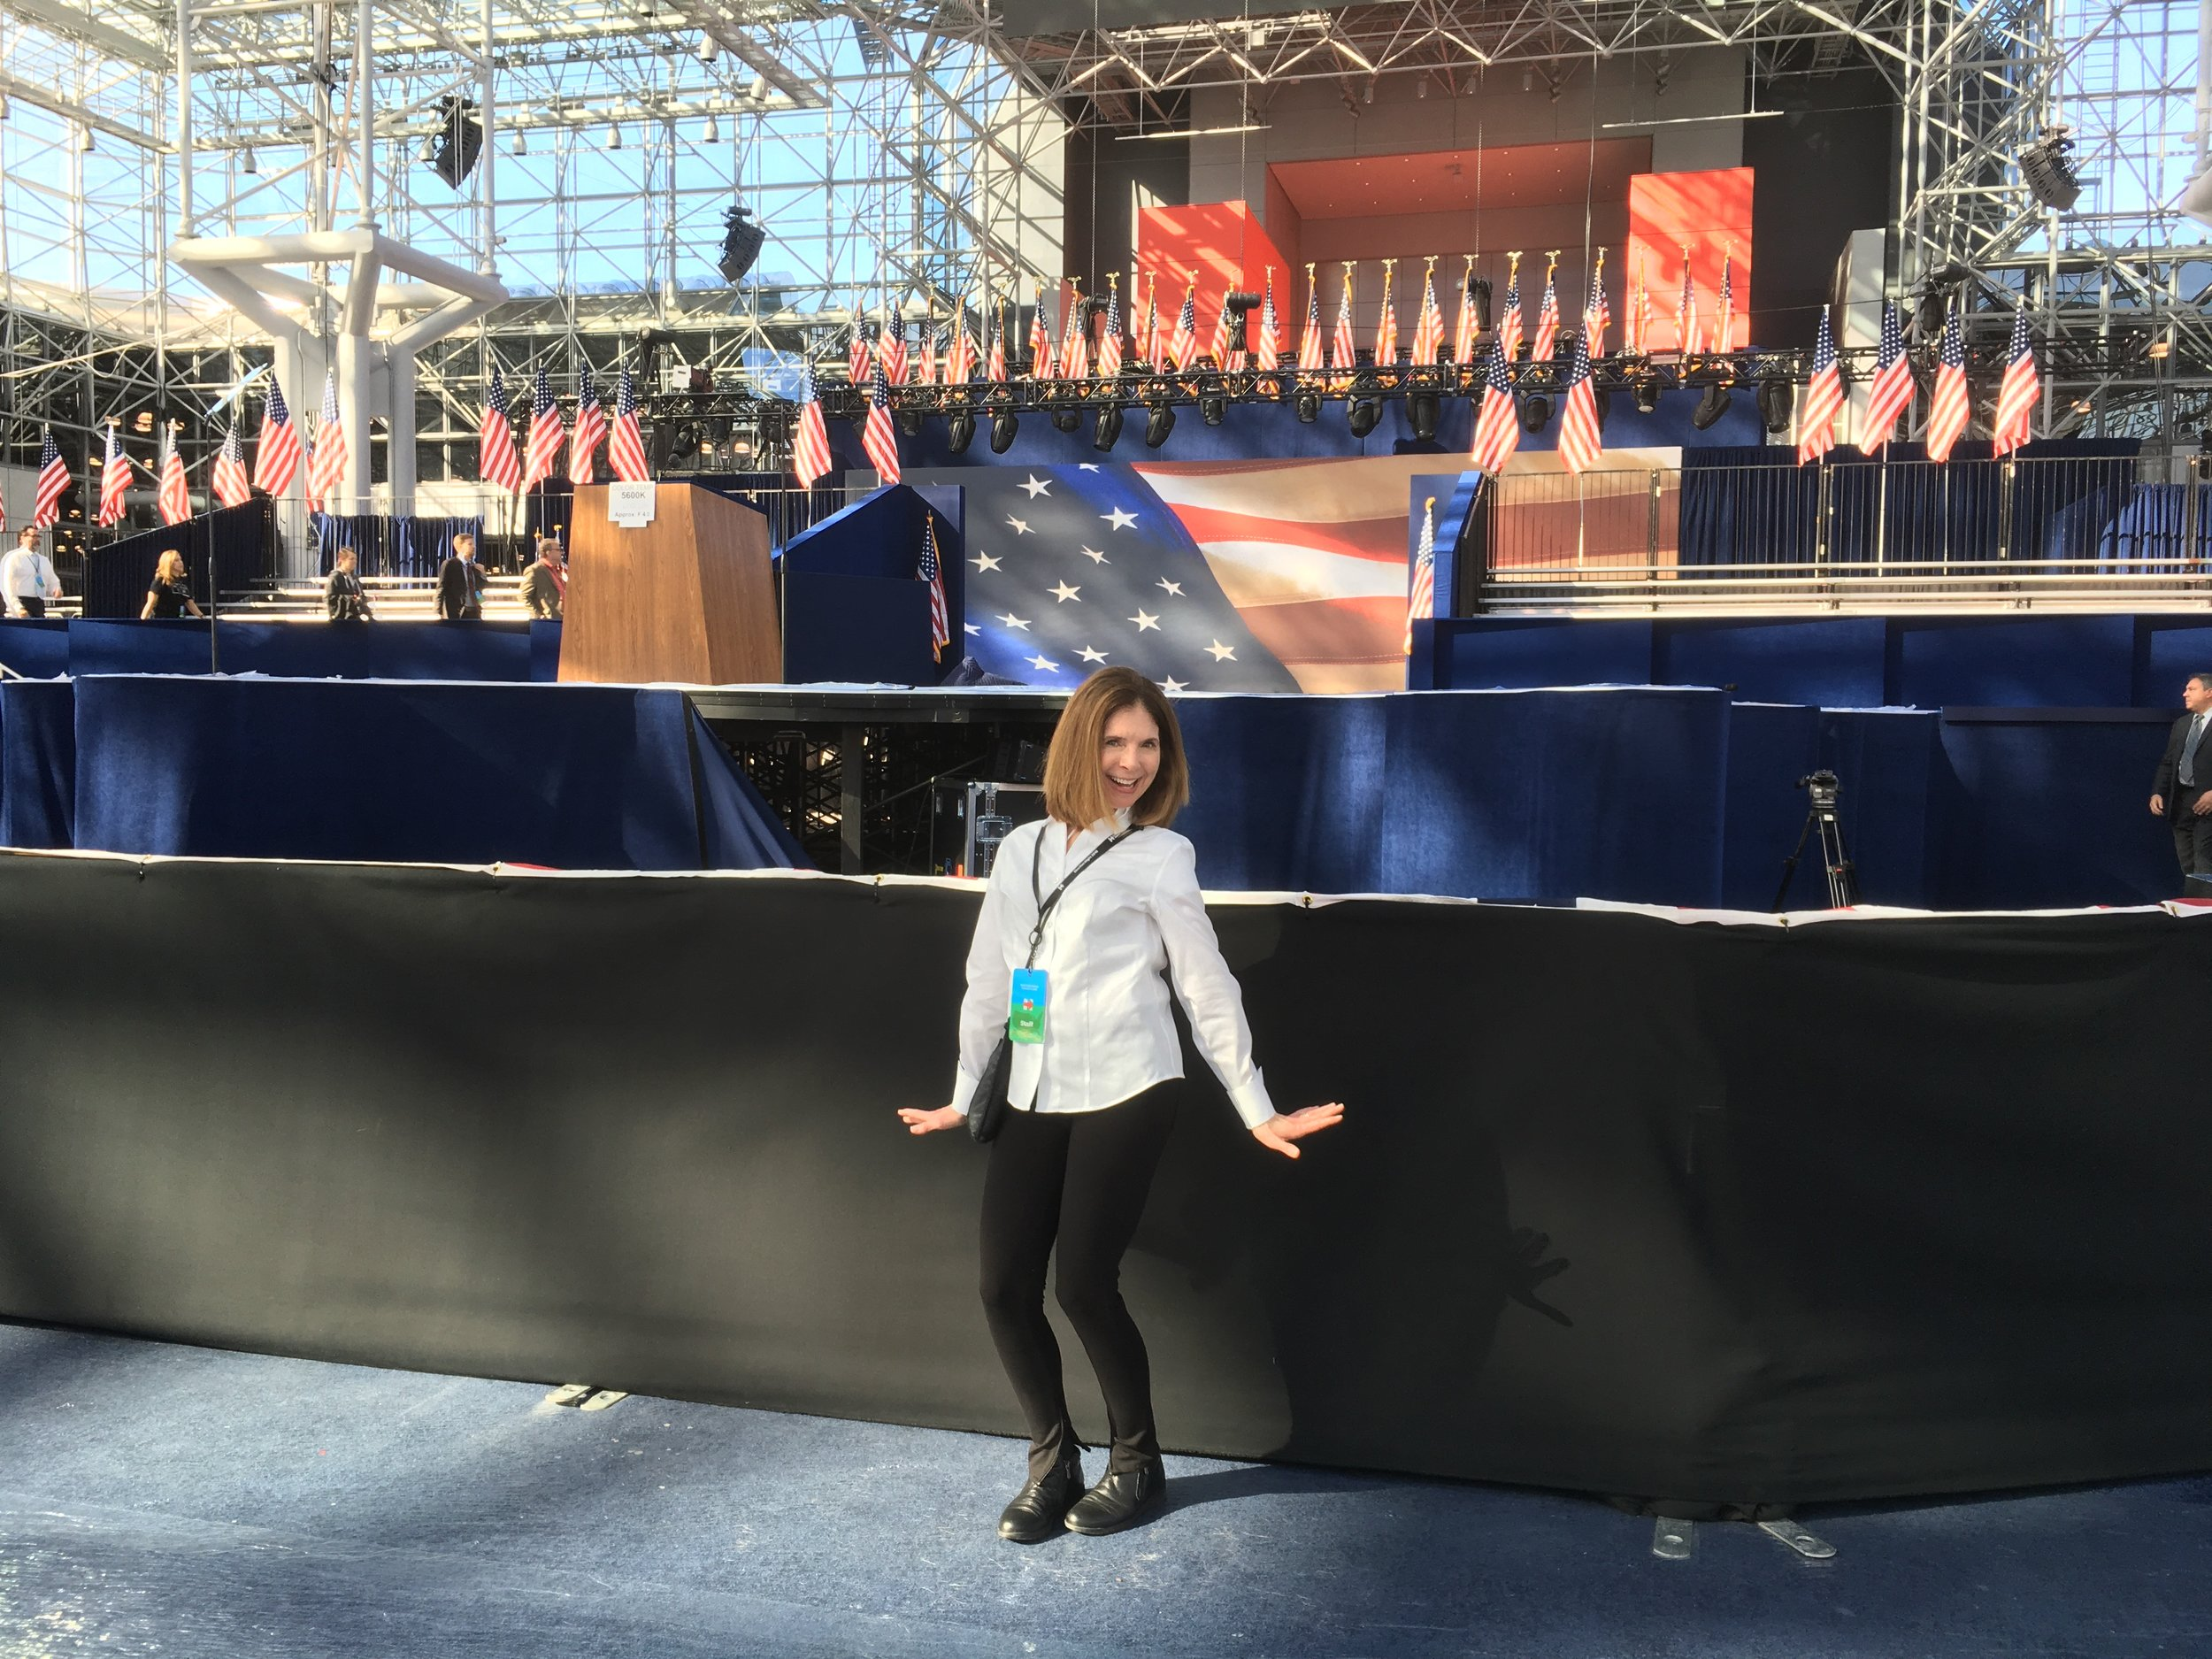 Here I am last year at Hillary's election headquarters, practicing my victory dance. Hey, I'm still dancing for women across the country... just not using the same moves.